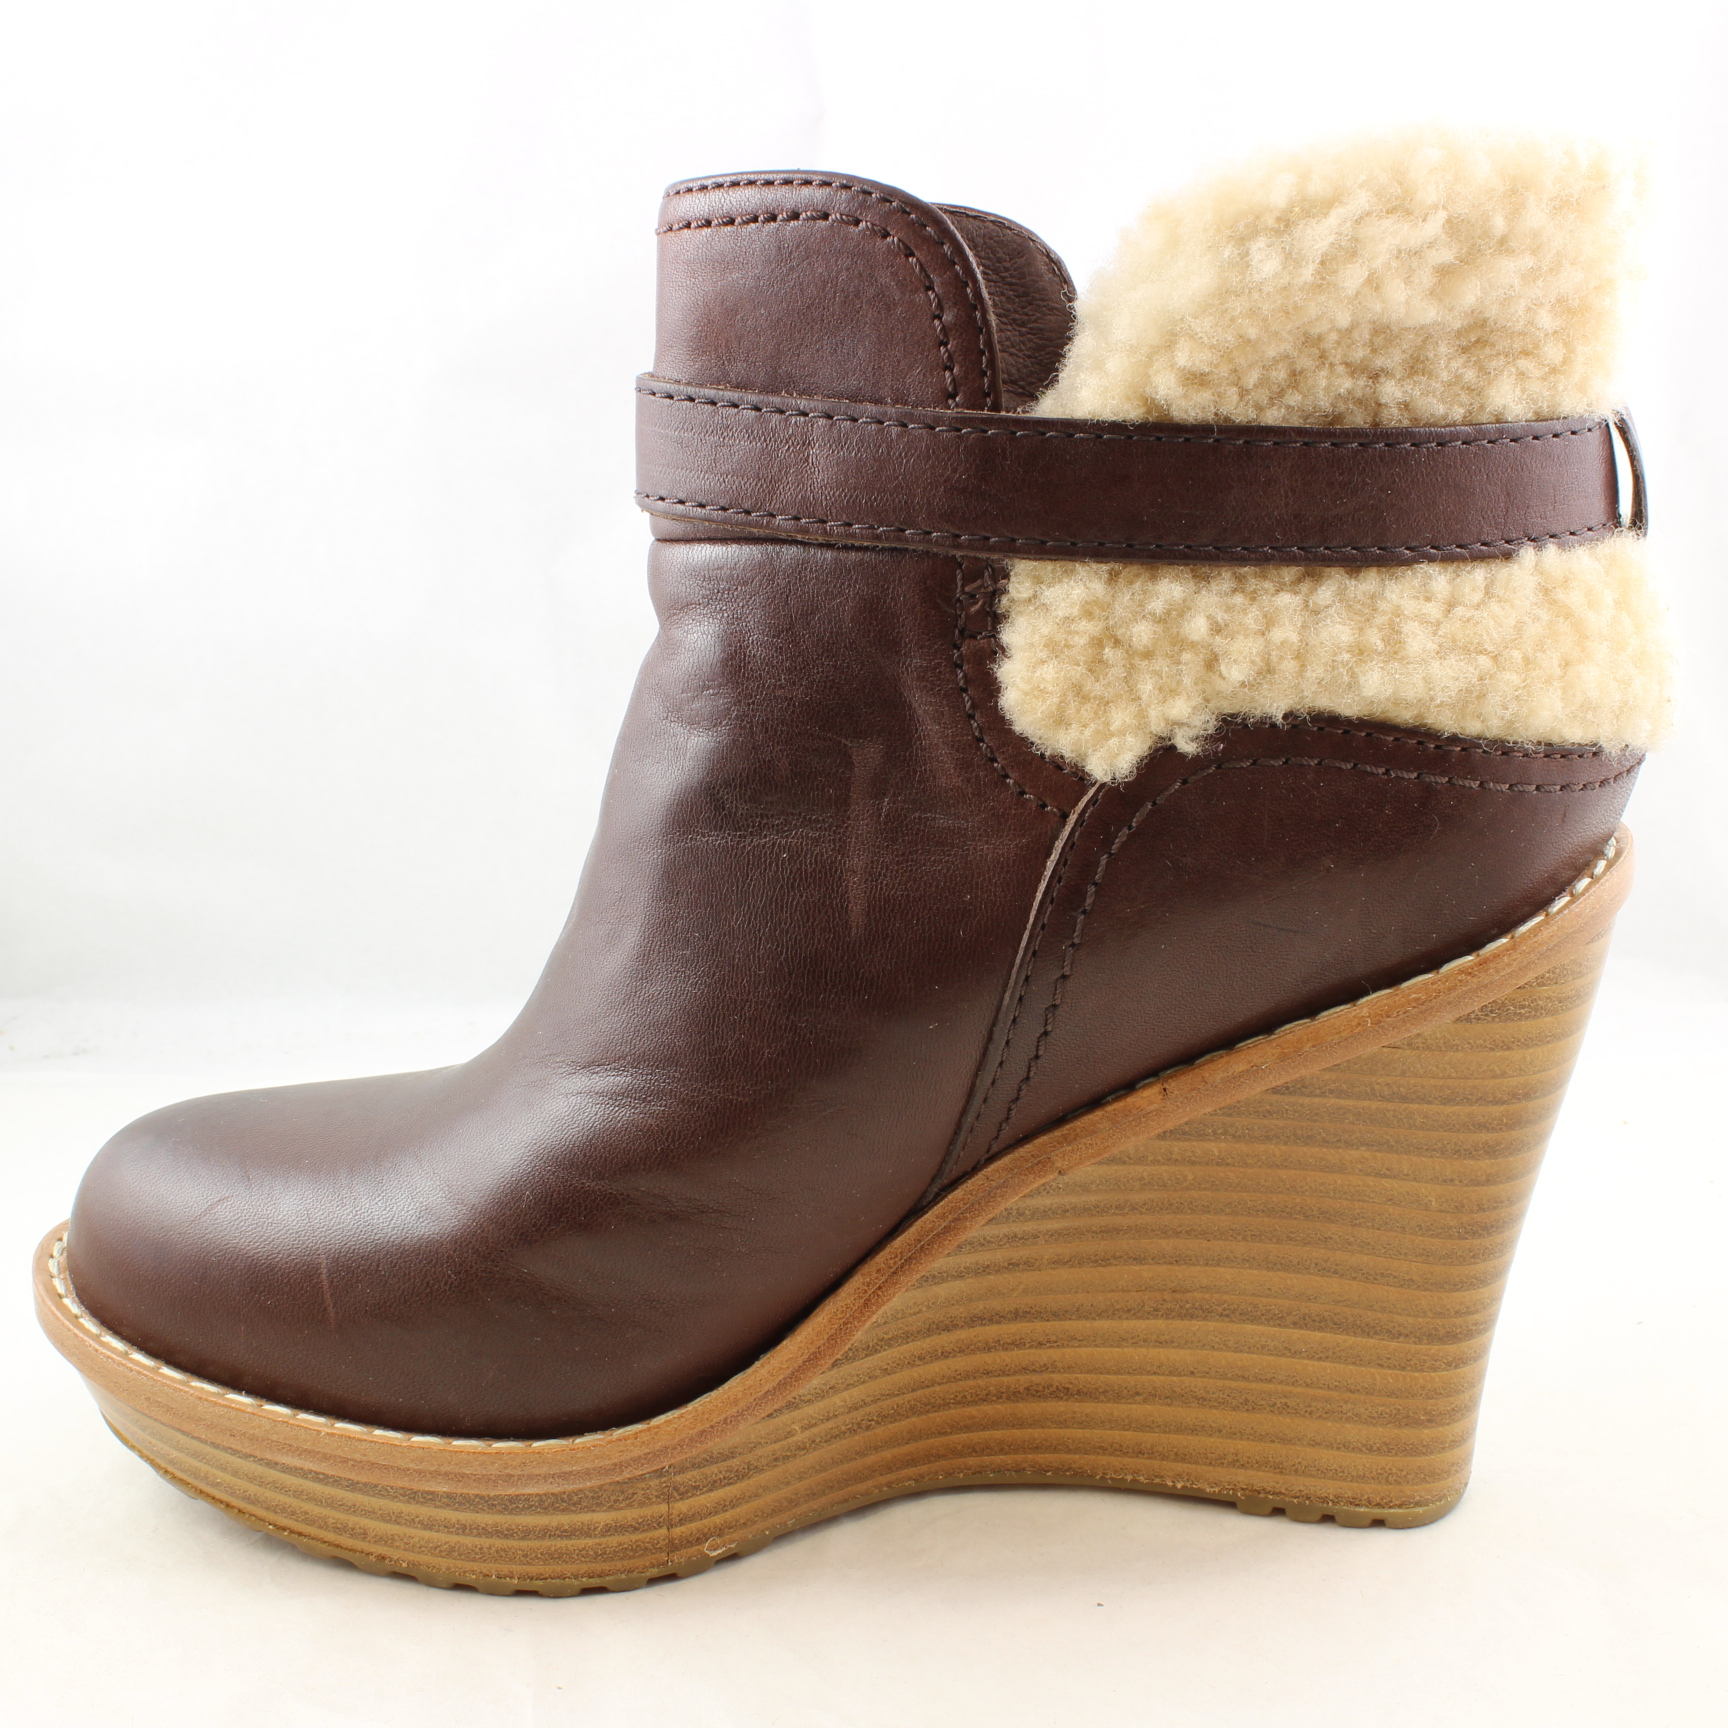 ugg wedge ankle boots uk